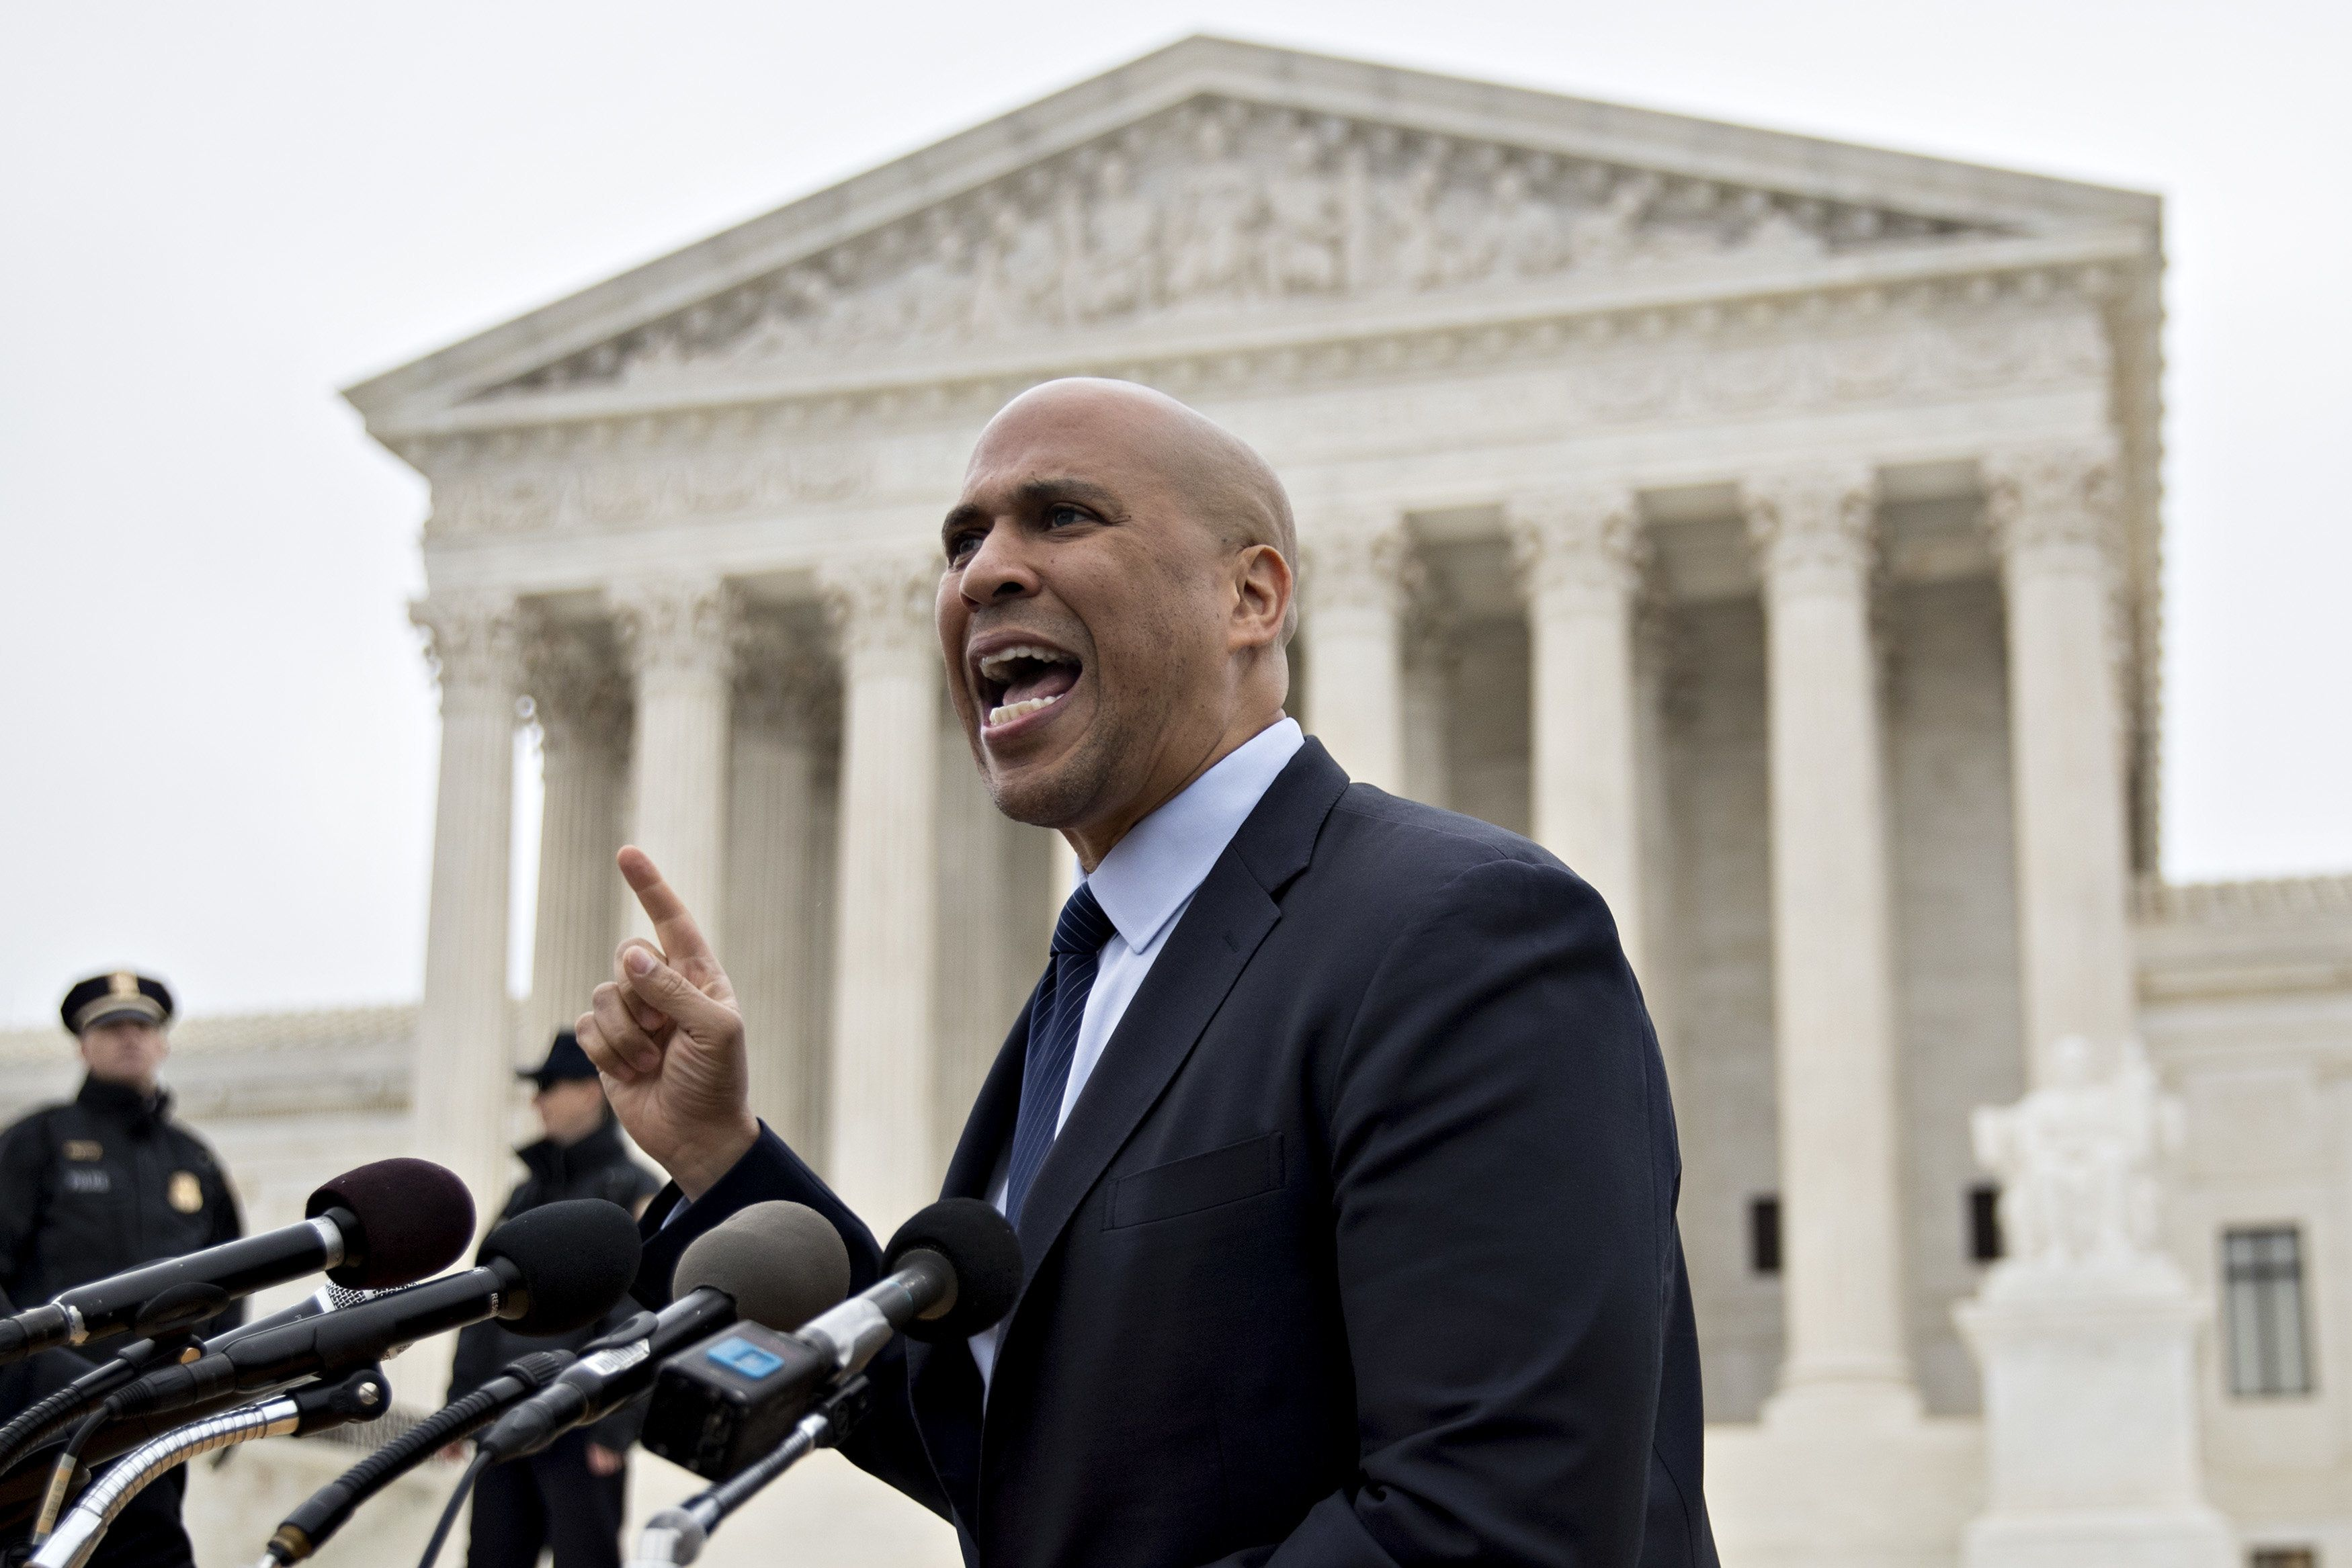 Sen. Cory Booker (D-N.J.) says the president may have a potential conflict of interest by picking a Supreme Court justice whi